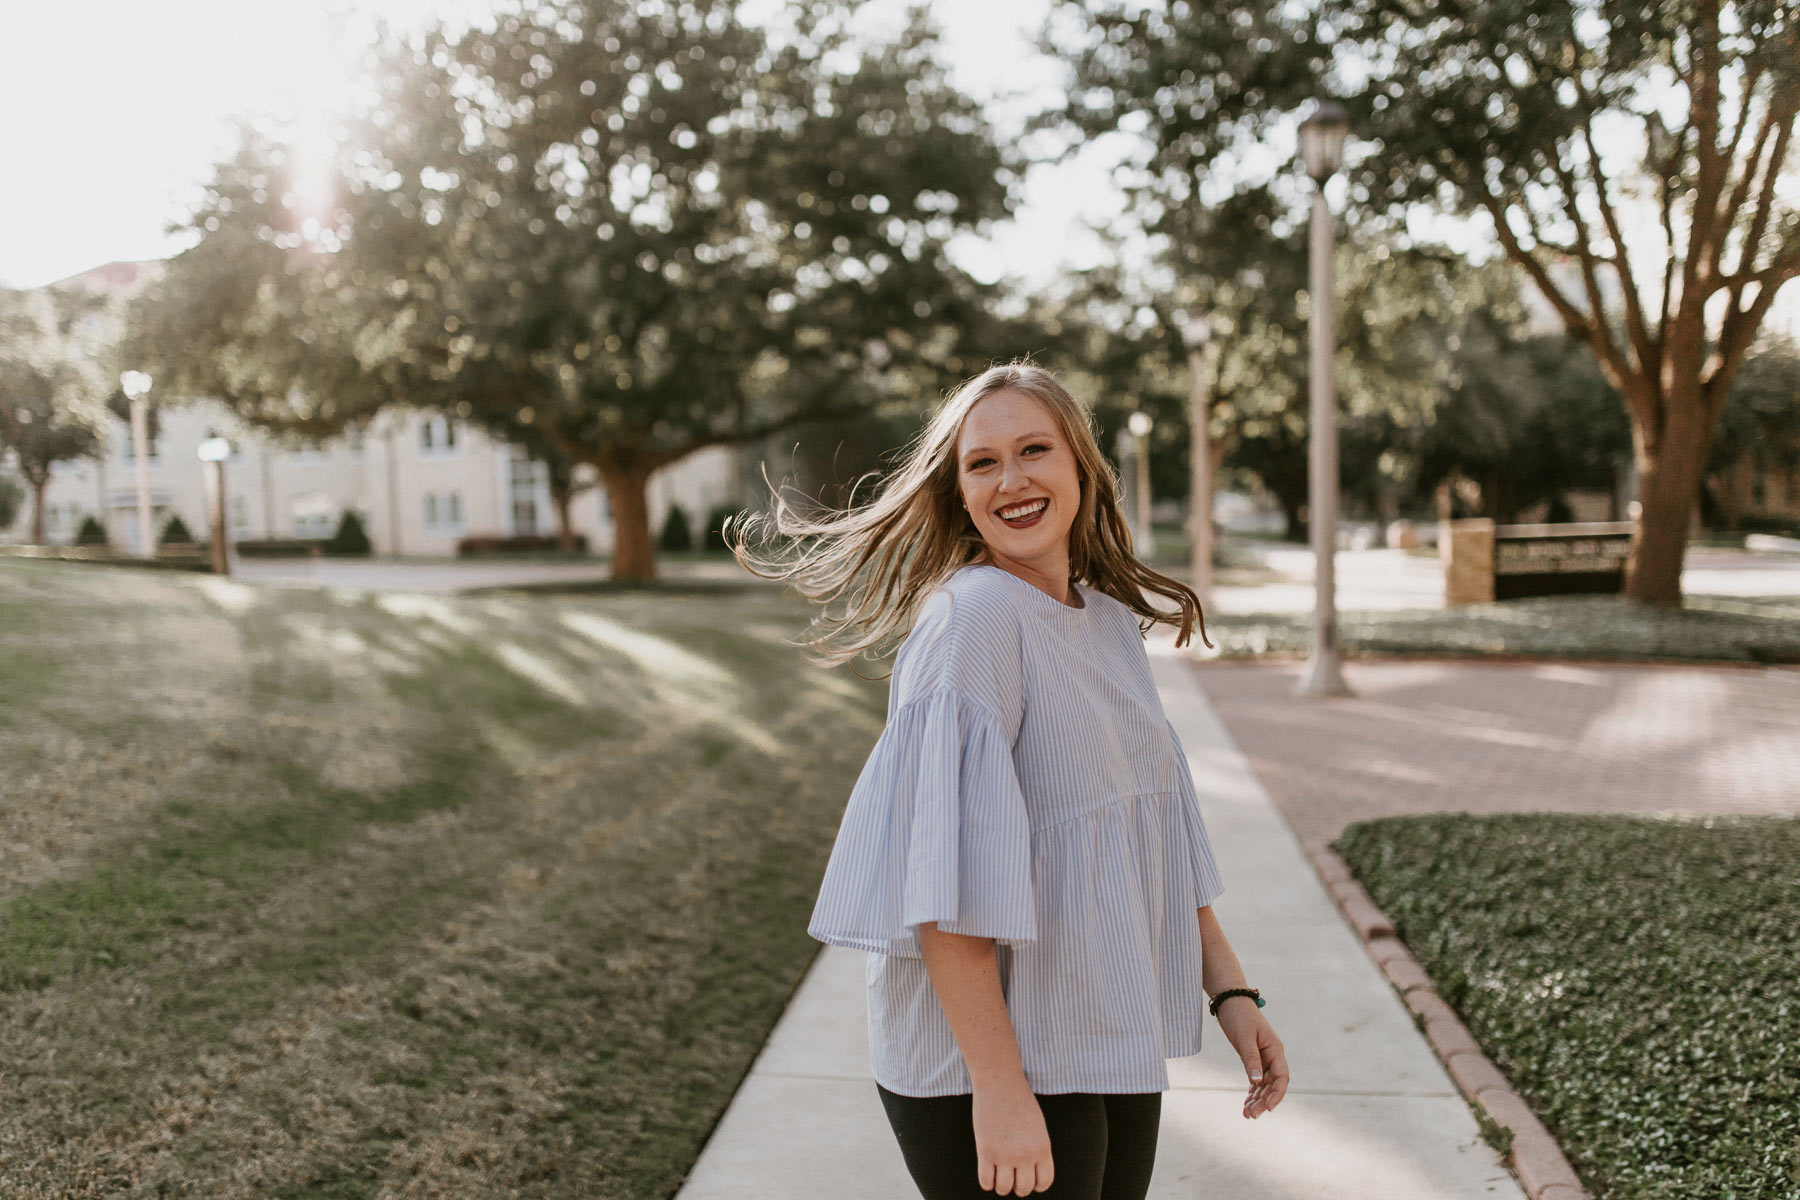 senior photography session at texas Christian university